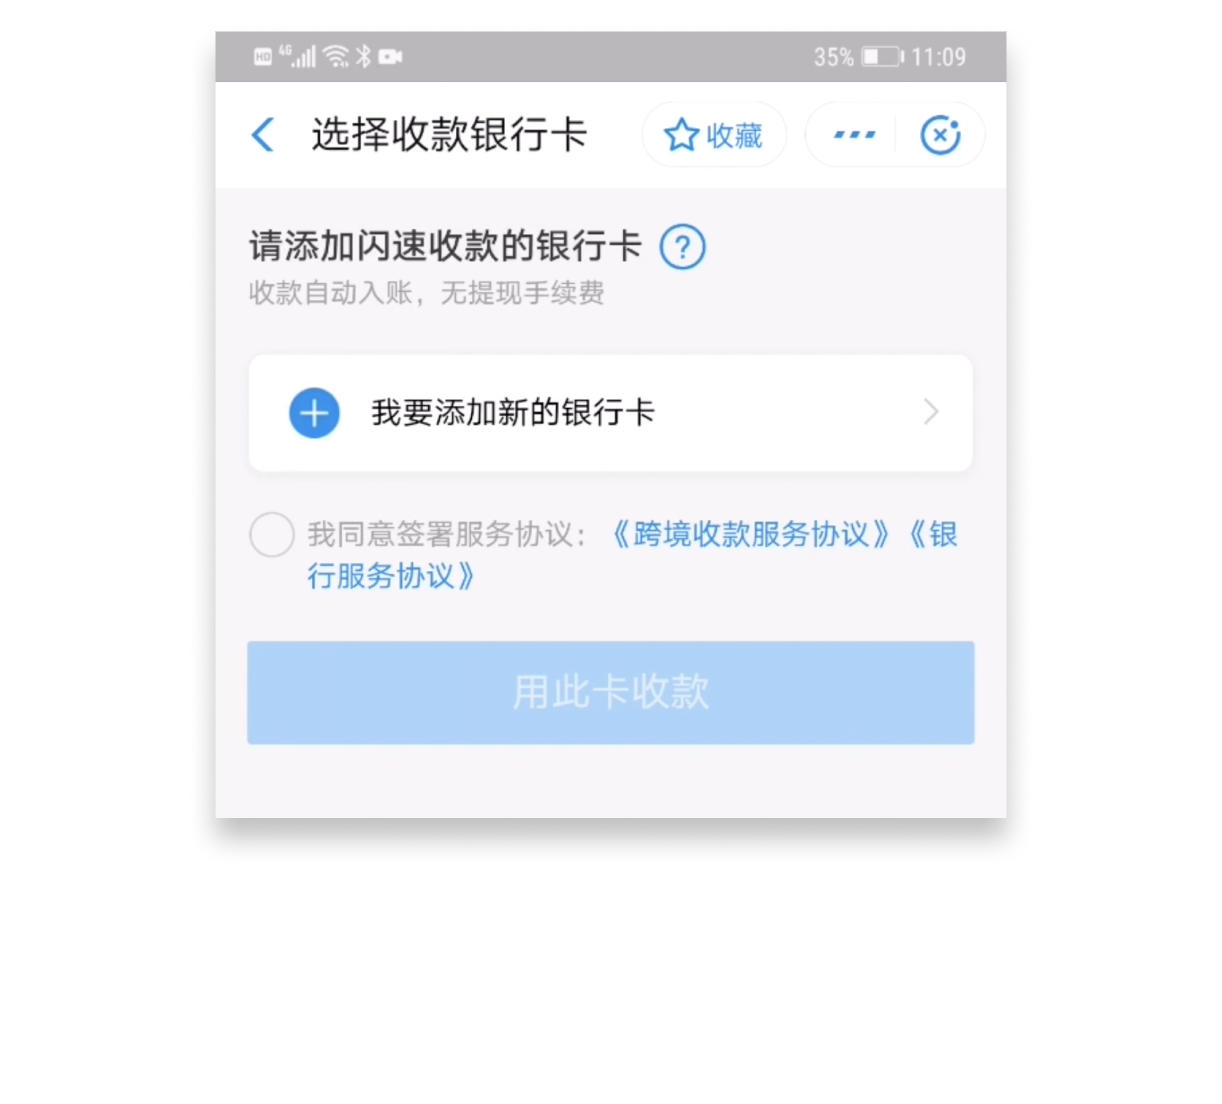 Choose a bank card to link to Alipay